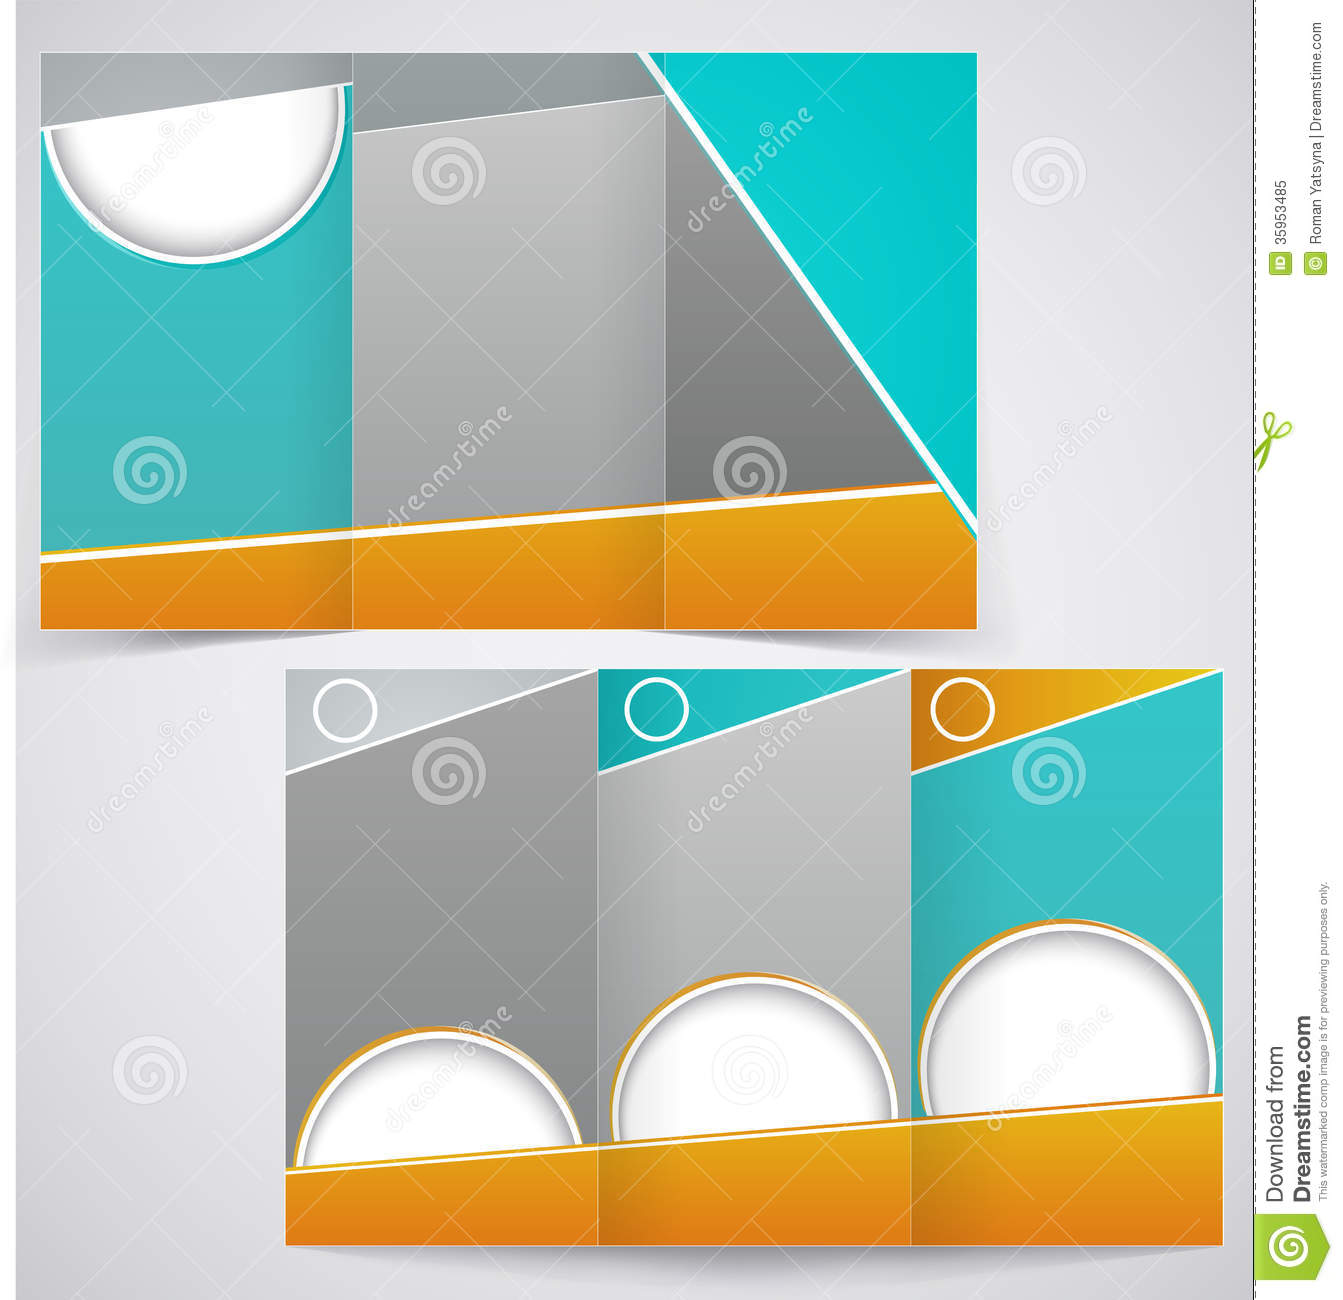 brochure layout templates - vector brochure layout design with green and yello stock